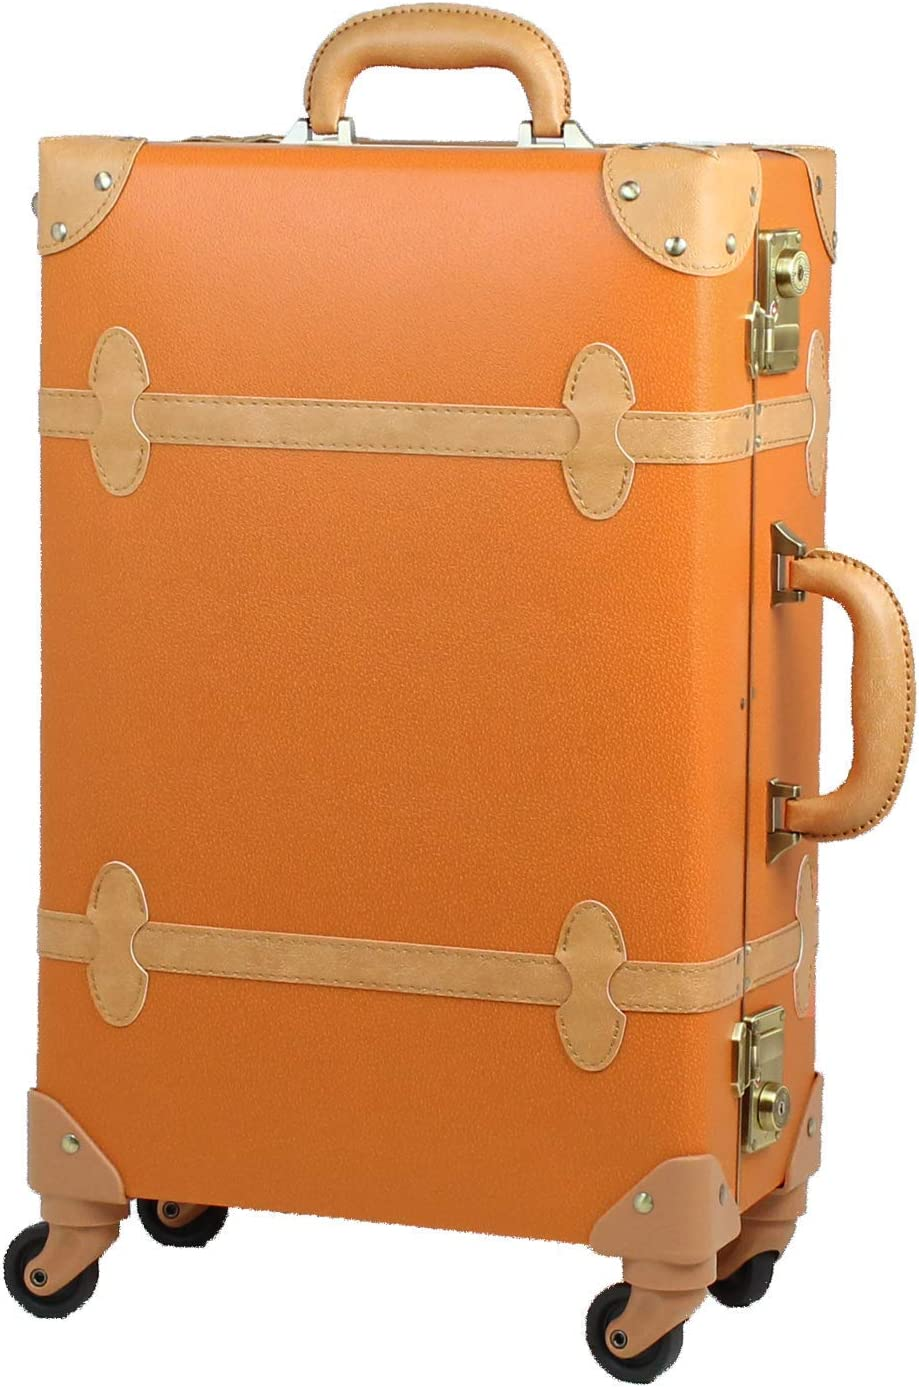 MOIERG Trolley Luggage Vintage suitcase Lock 71-55062-7 with Houston Mall TSA Cheap mail order shopping